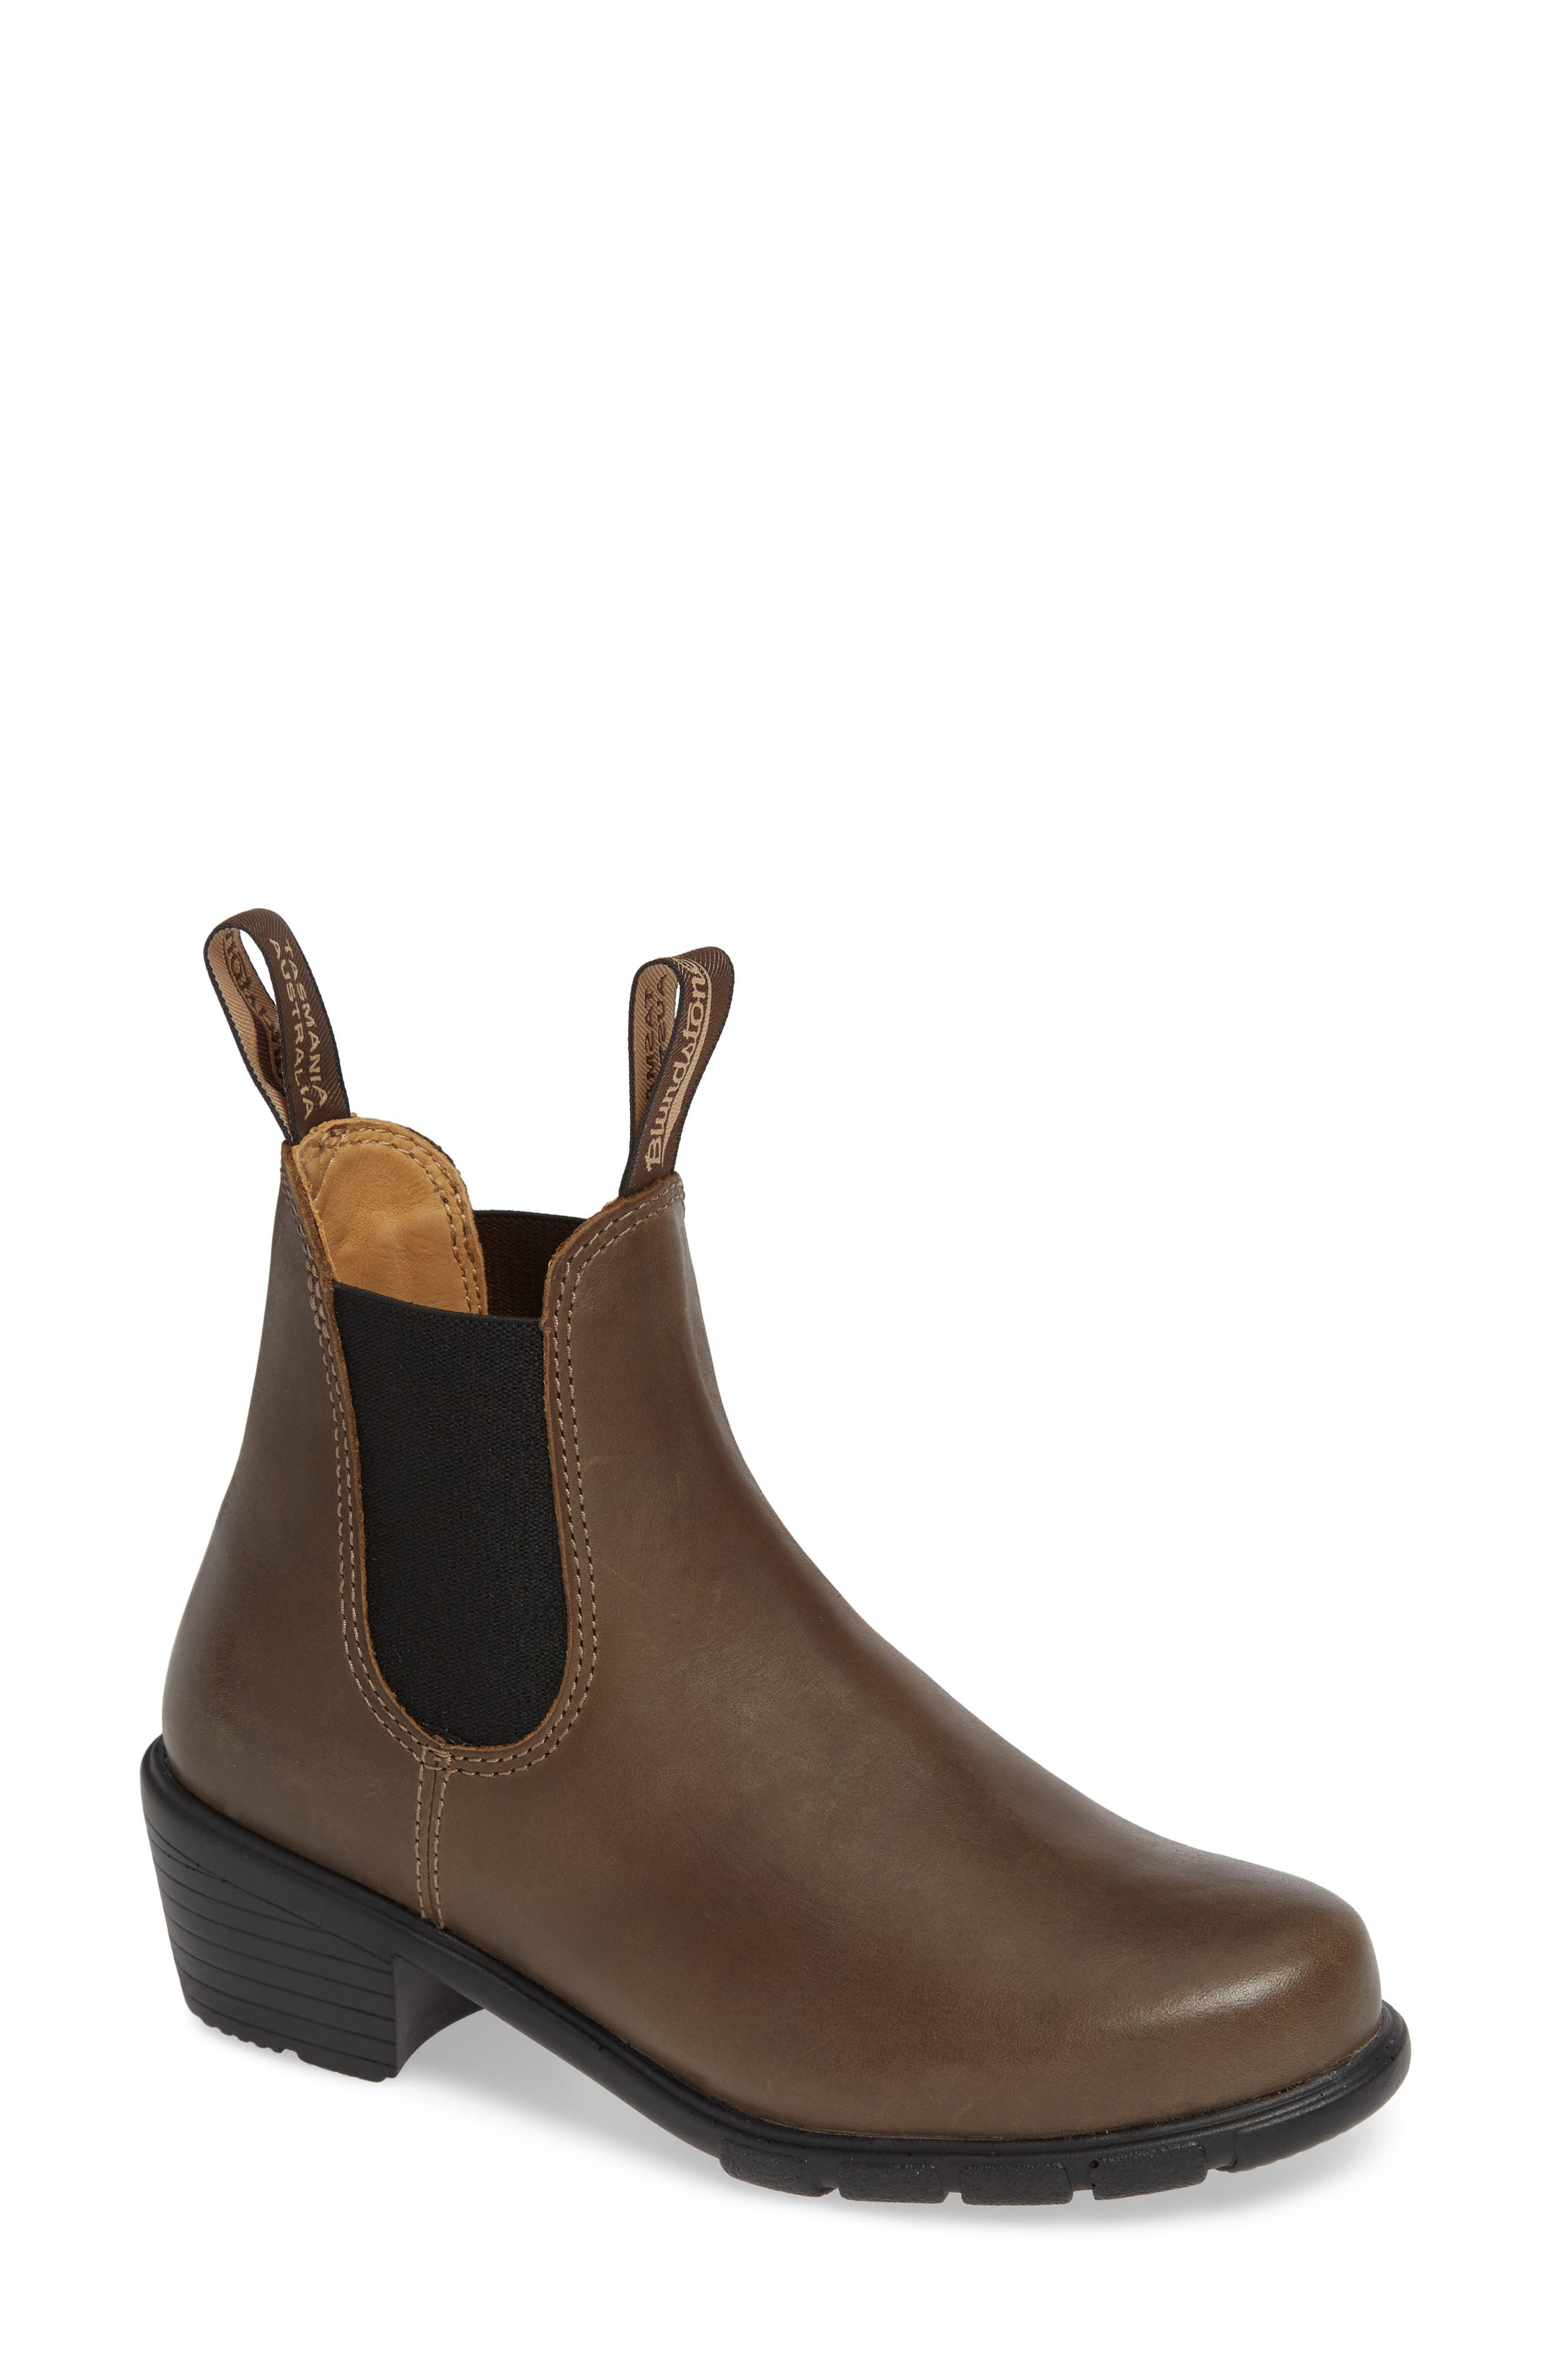 BLUNDSTONE FOOTWEAR, Blundstone 1671 Chelsea Boot, Main thumbnail 1, color, ANTIQUE TAUPE LEATHER